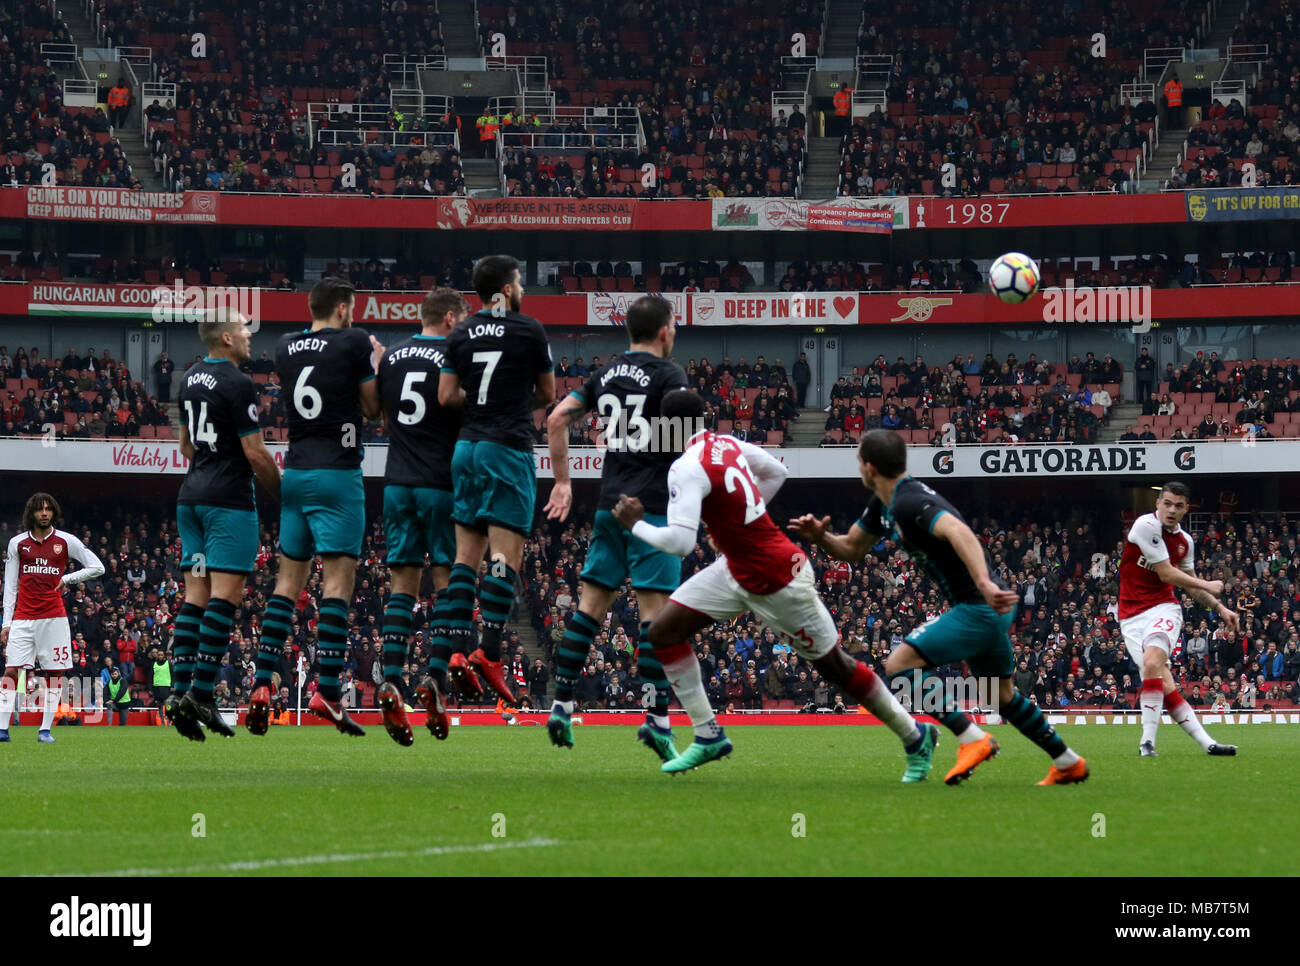 Granit Xhaka A Fires In A Free Kick Over A Southampton Defensive Wall At The Arsenal V Southampton English Premier League Game At The Emirates Stadium